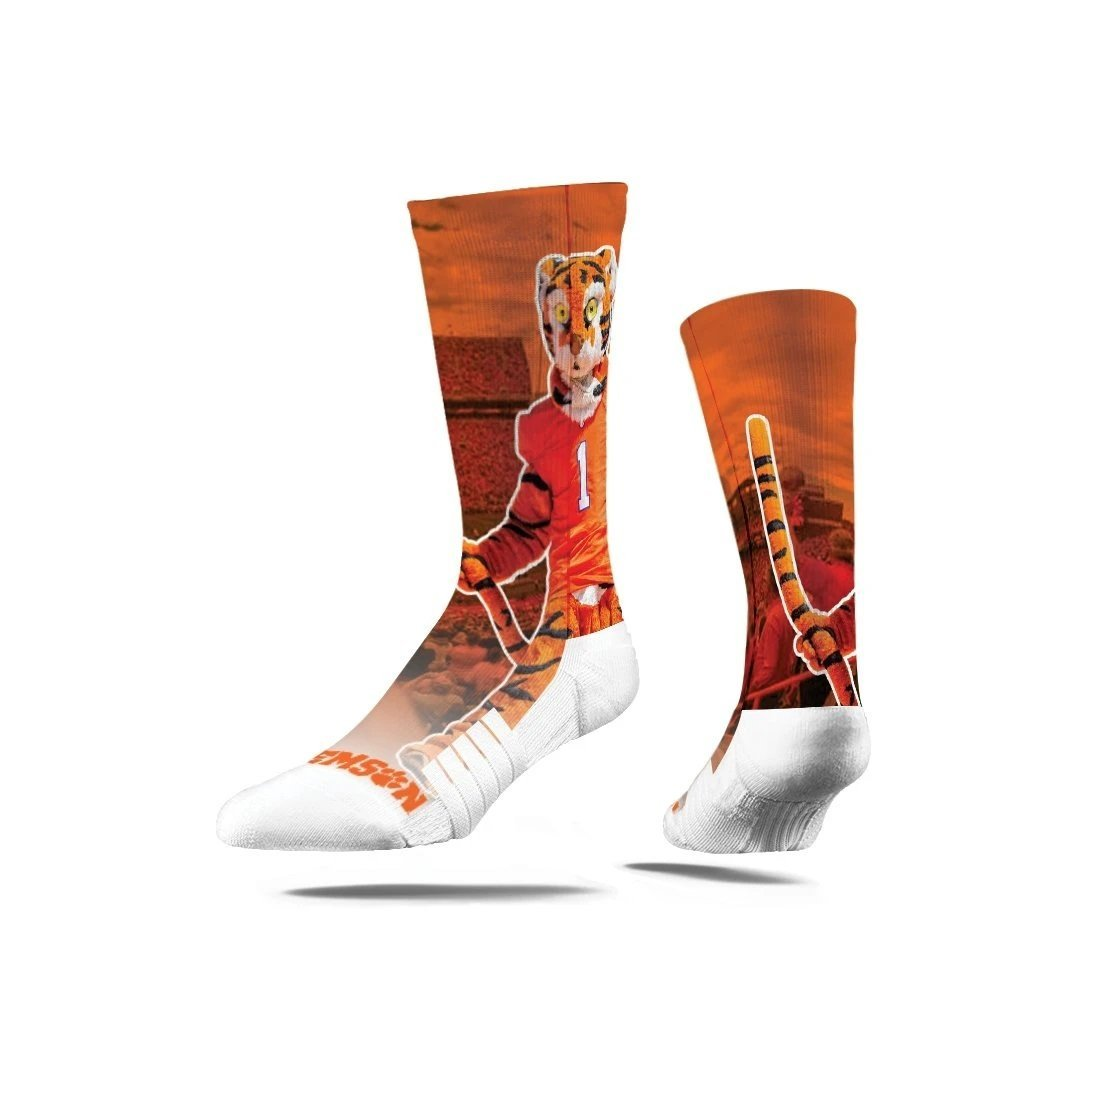 Strideline Clemson Mascot Crew Socks - Mr. Knickerbocker